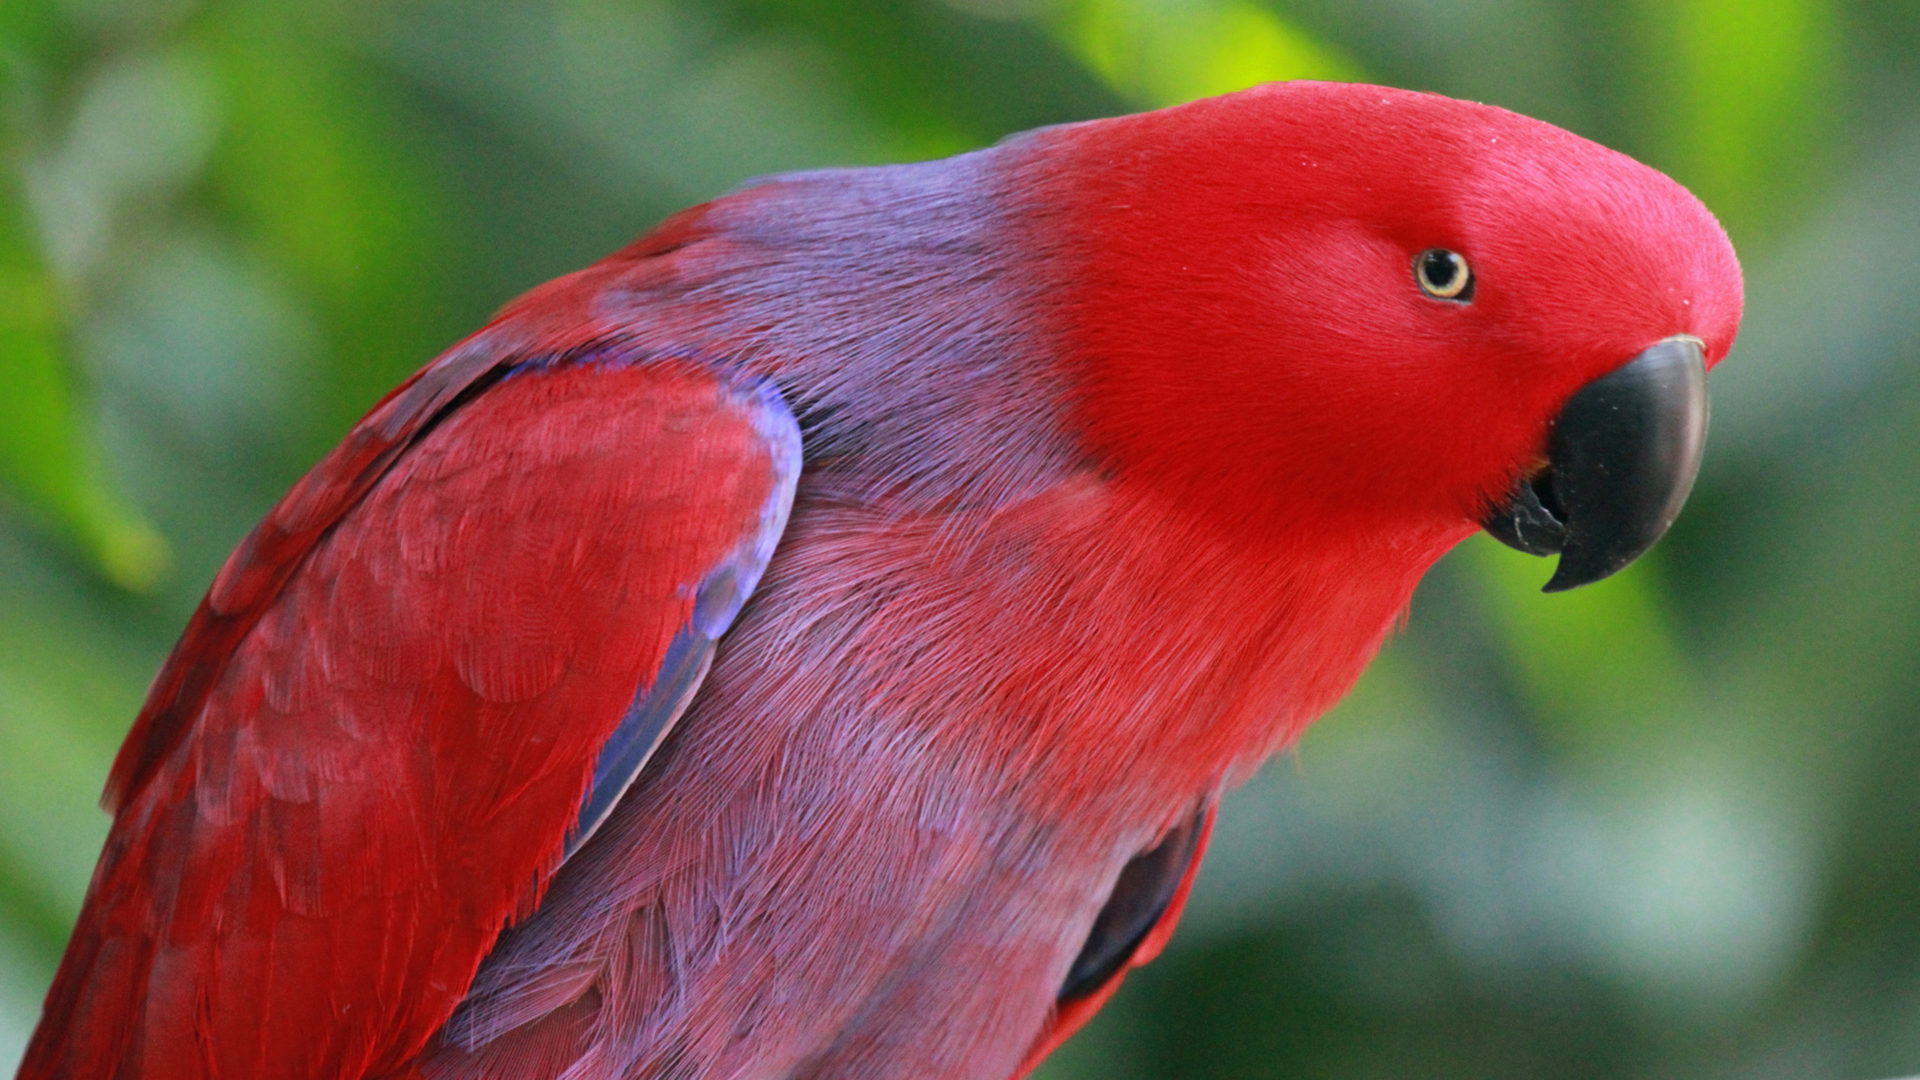 Baby Pink Iphone Wallpaper Red Eclectus Parrot Hd Wallpaper Wallpapers13 Com